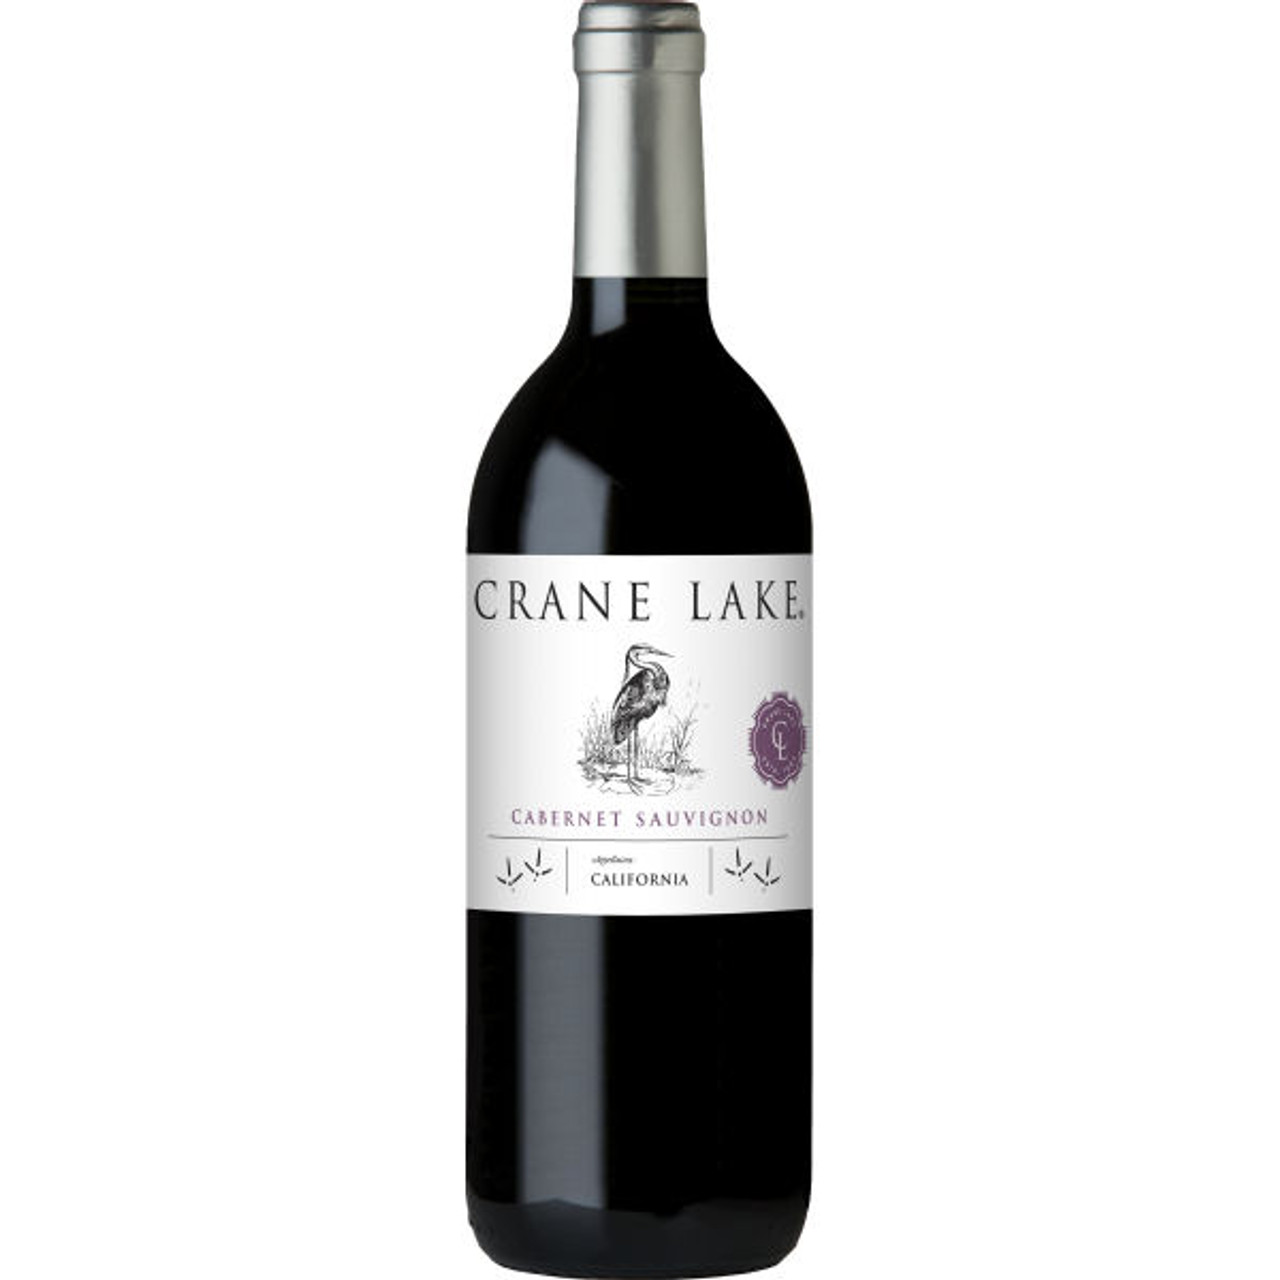 Crane Lake California Cabernet